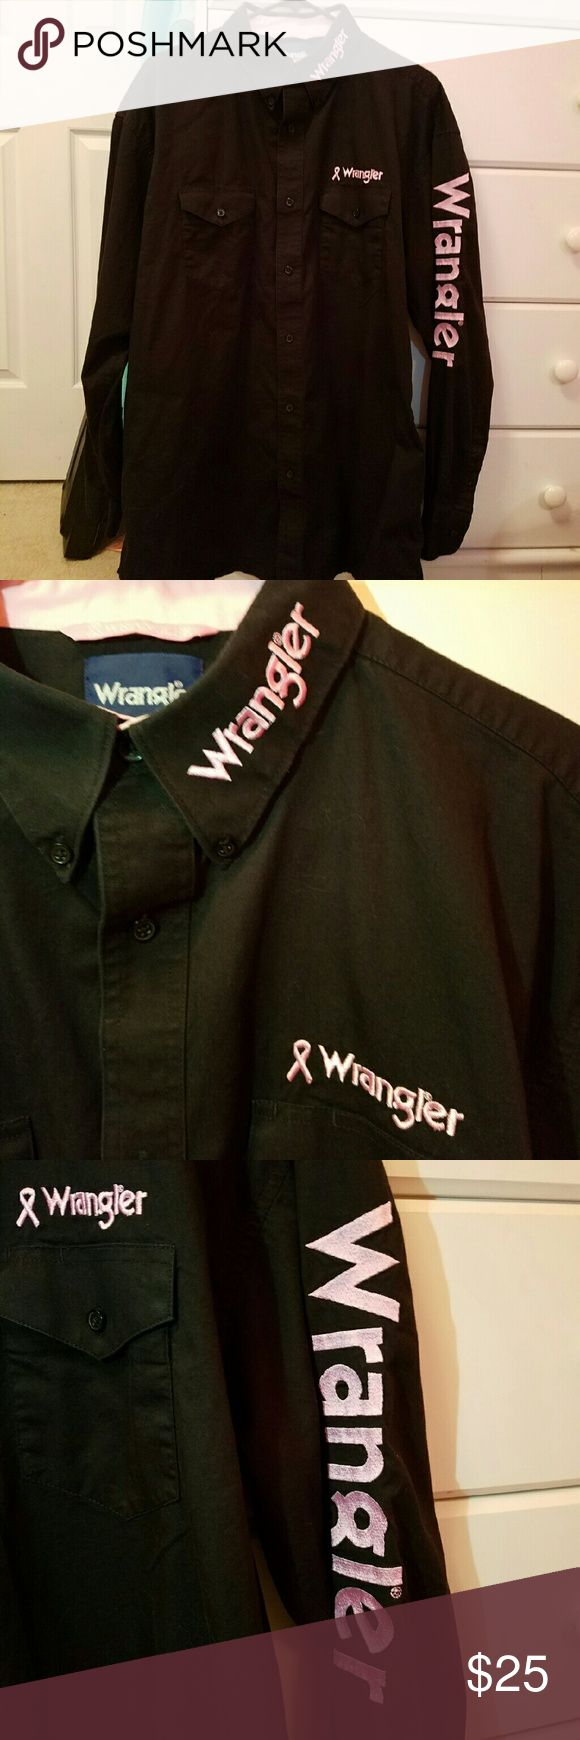 Black and Pink Wrangler Shirt. Breast cancer awareness shirt. Very nice. Good used condition. No tears, holes or stains Wrangler Shirts Casual Button Down Shirts